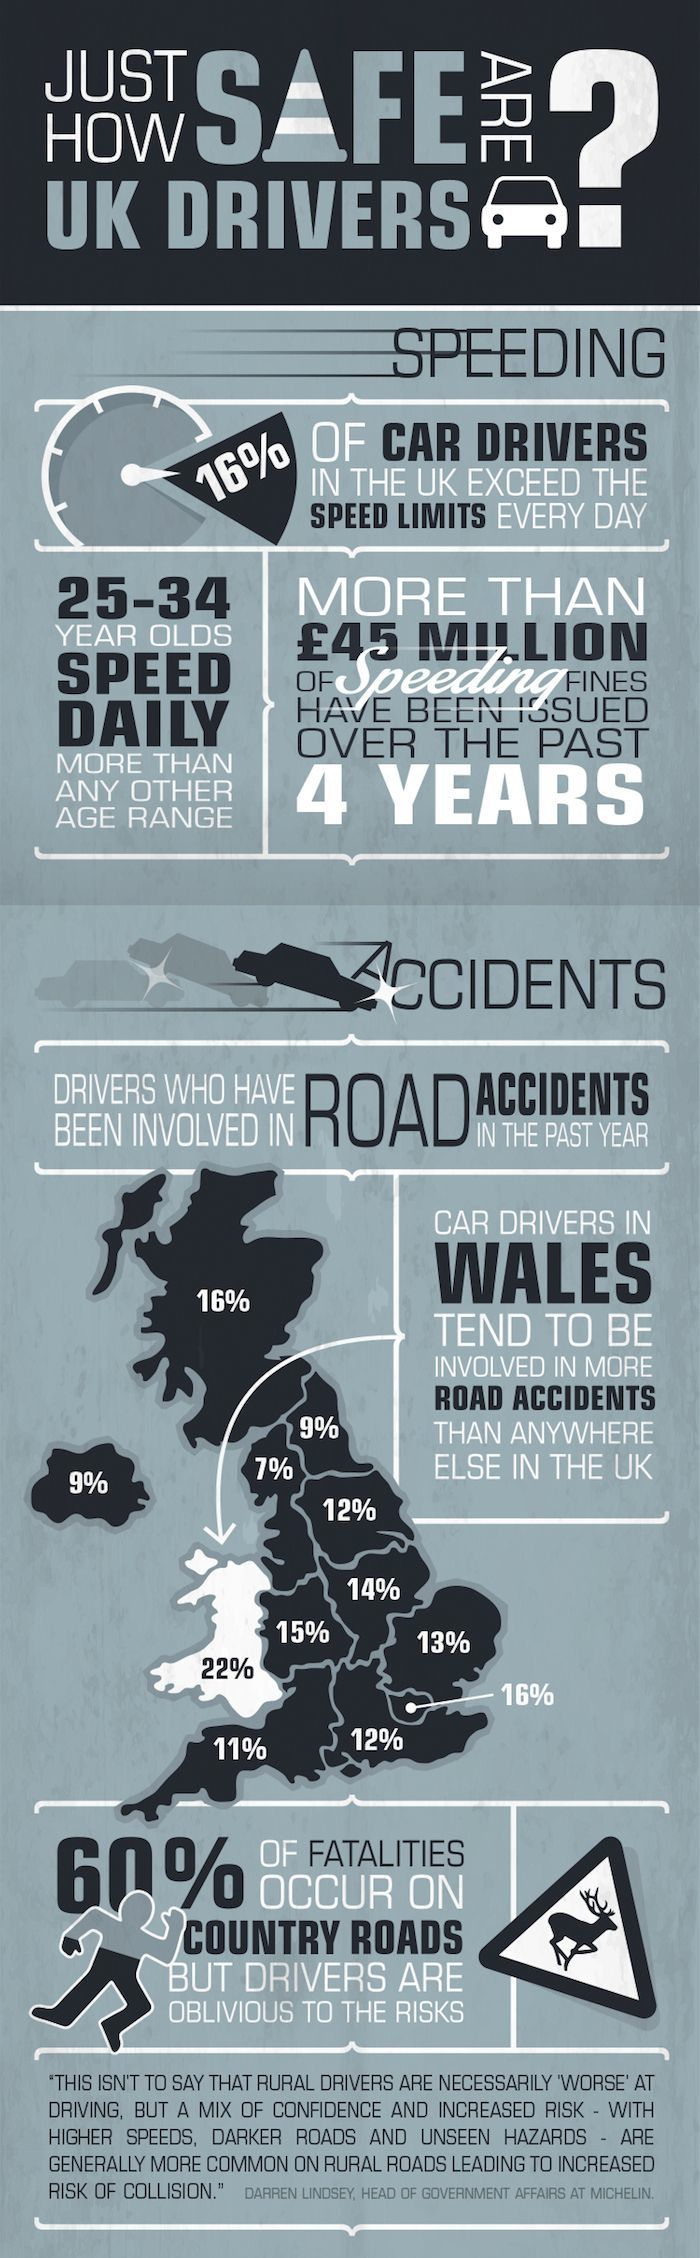 How safe are UK drivers? Infographic 01